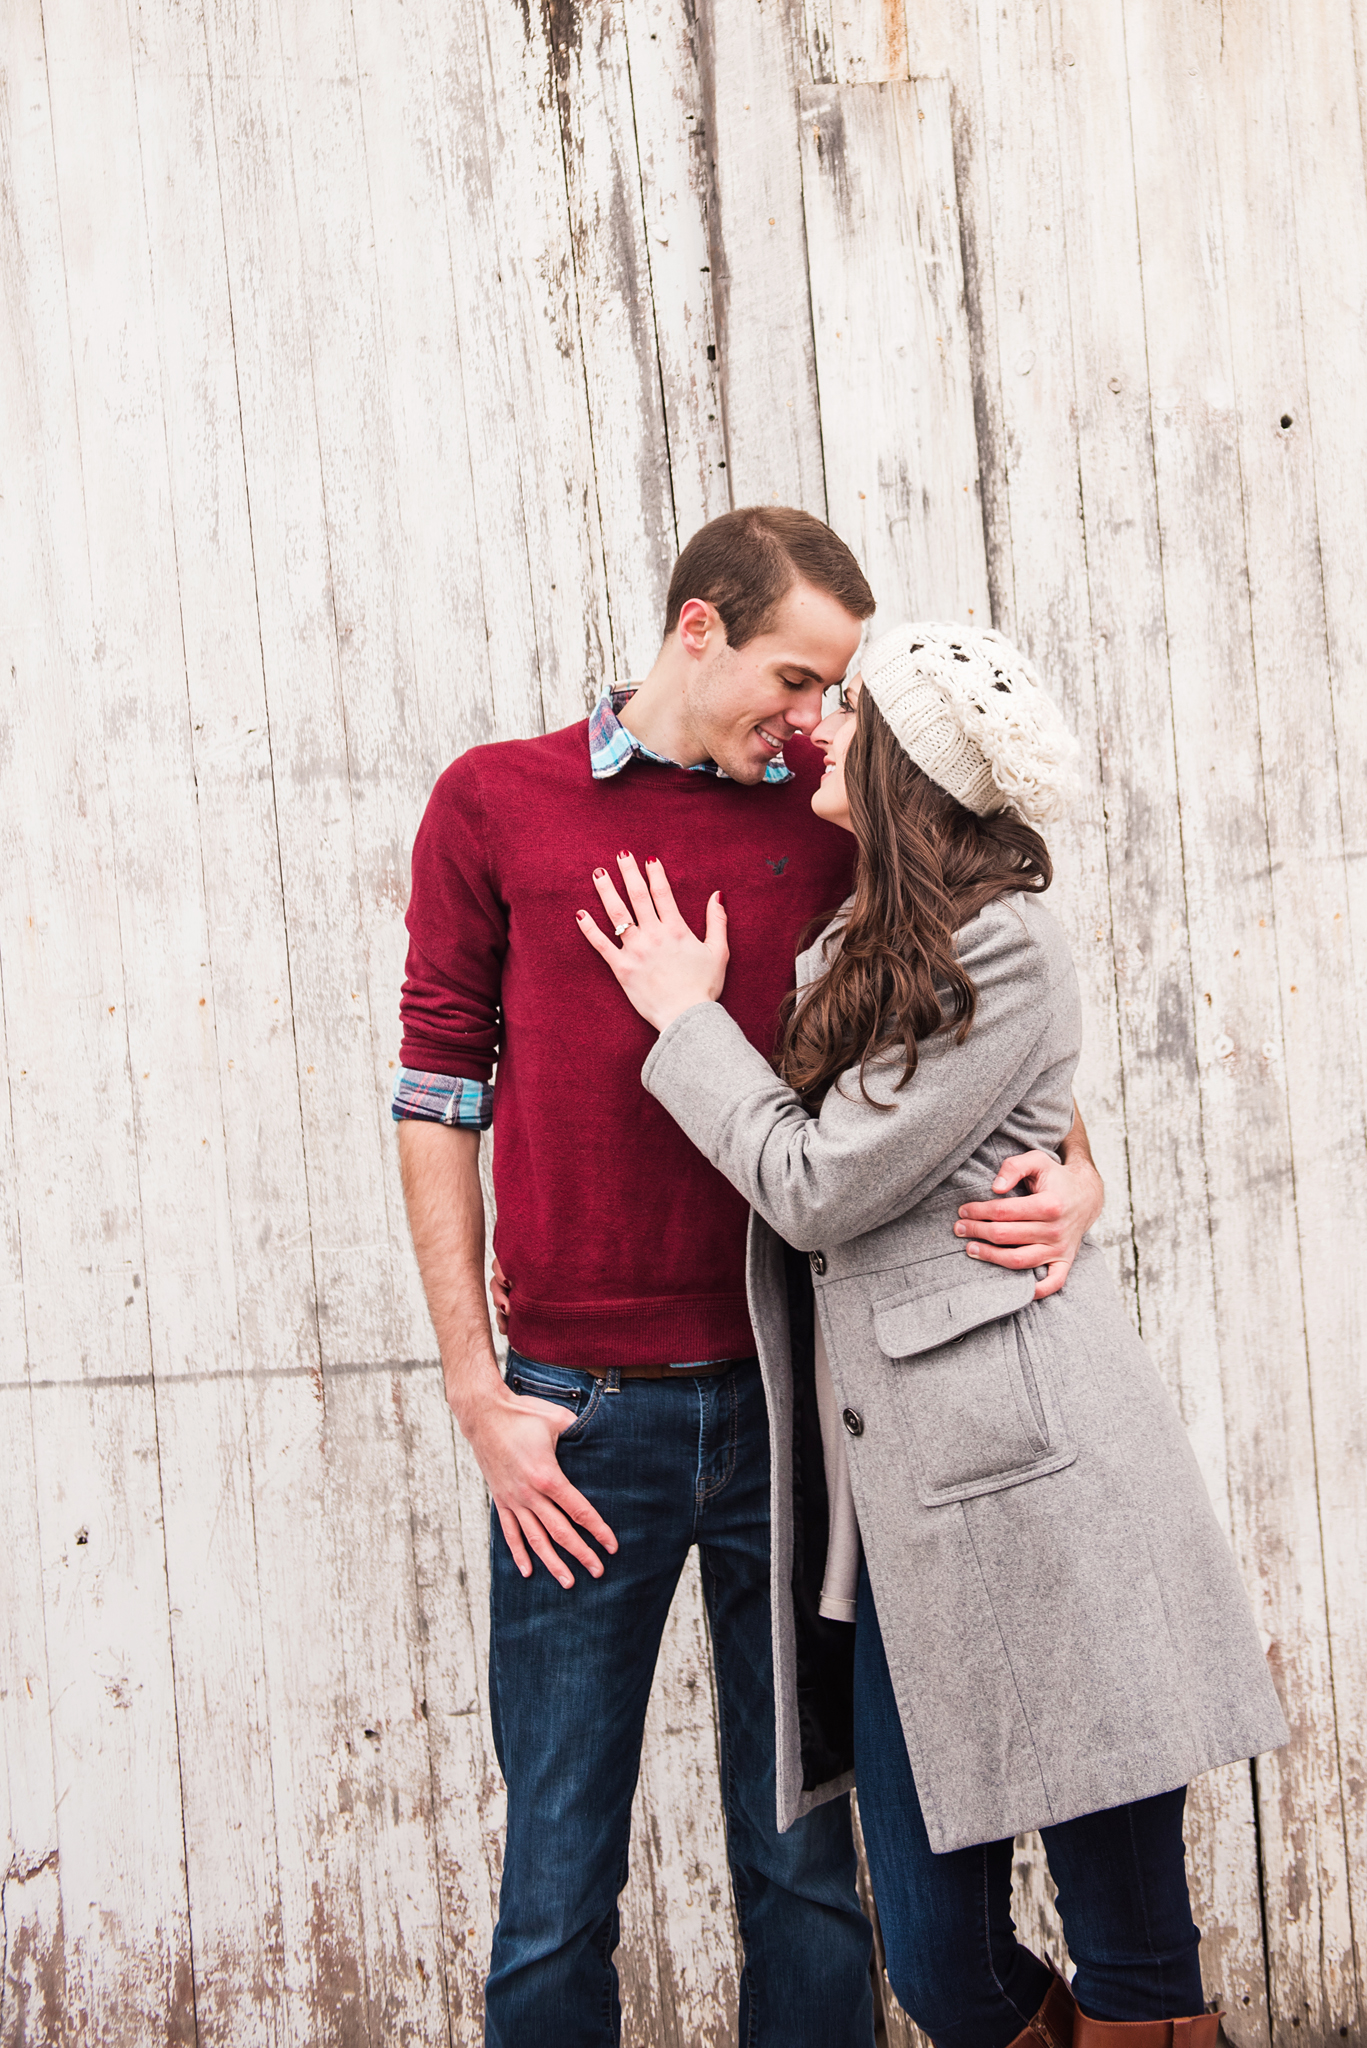 Woody_Acres_Rochester_Engagement_Session_JILL_STUDIO_Rochester_NY_Photographer_154853.jpg